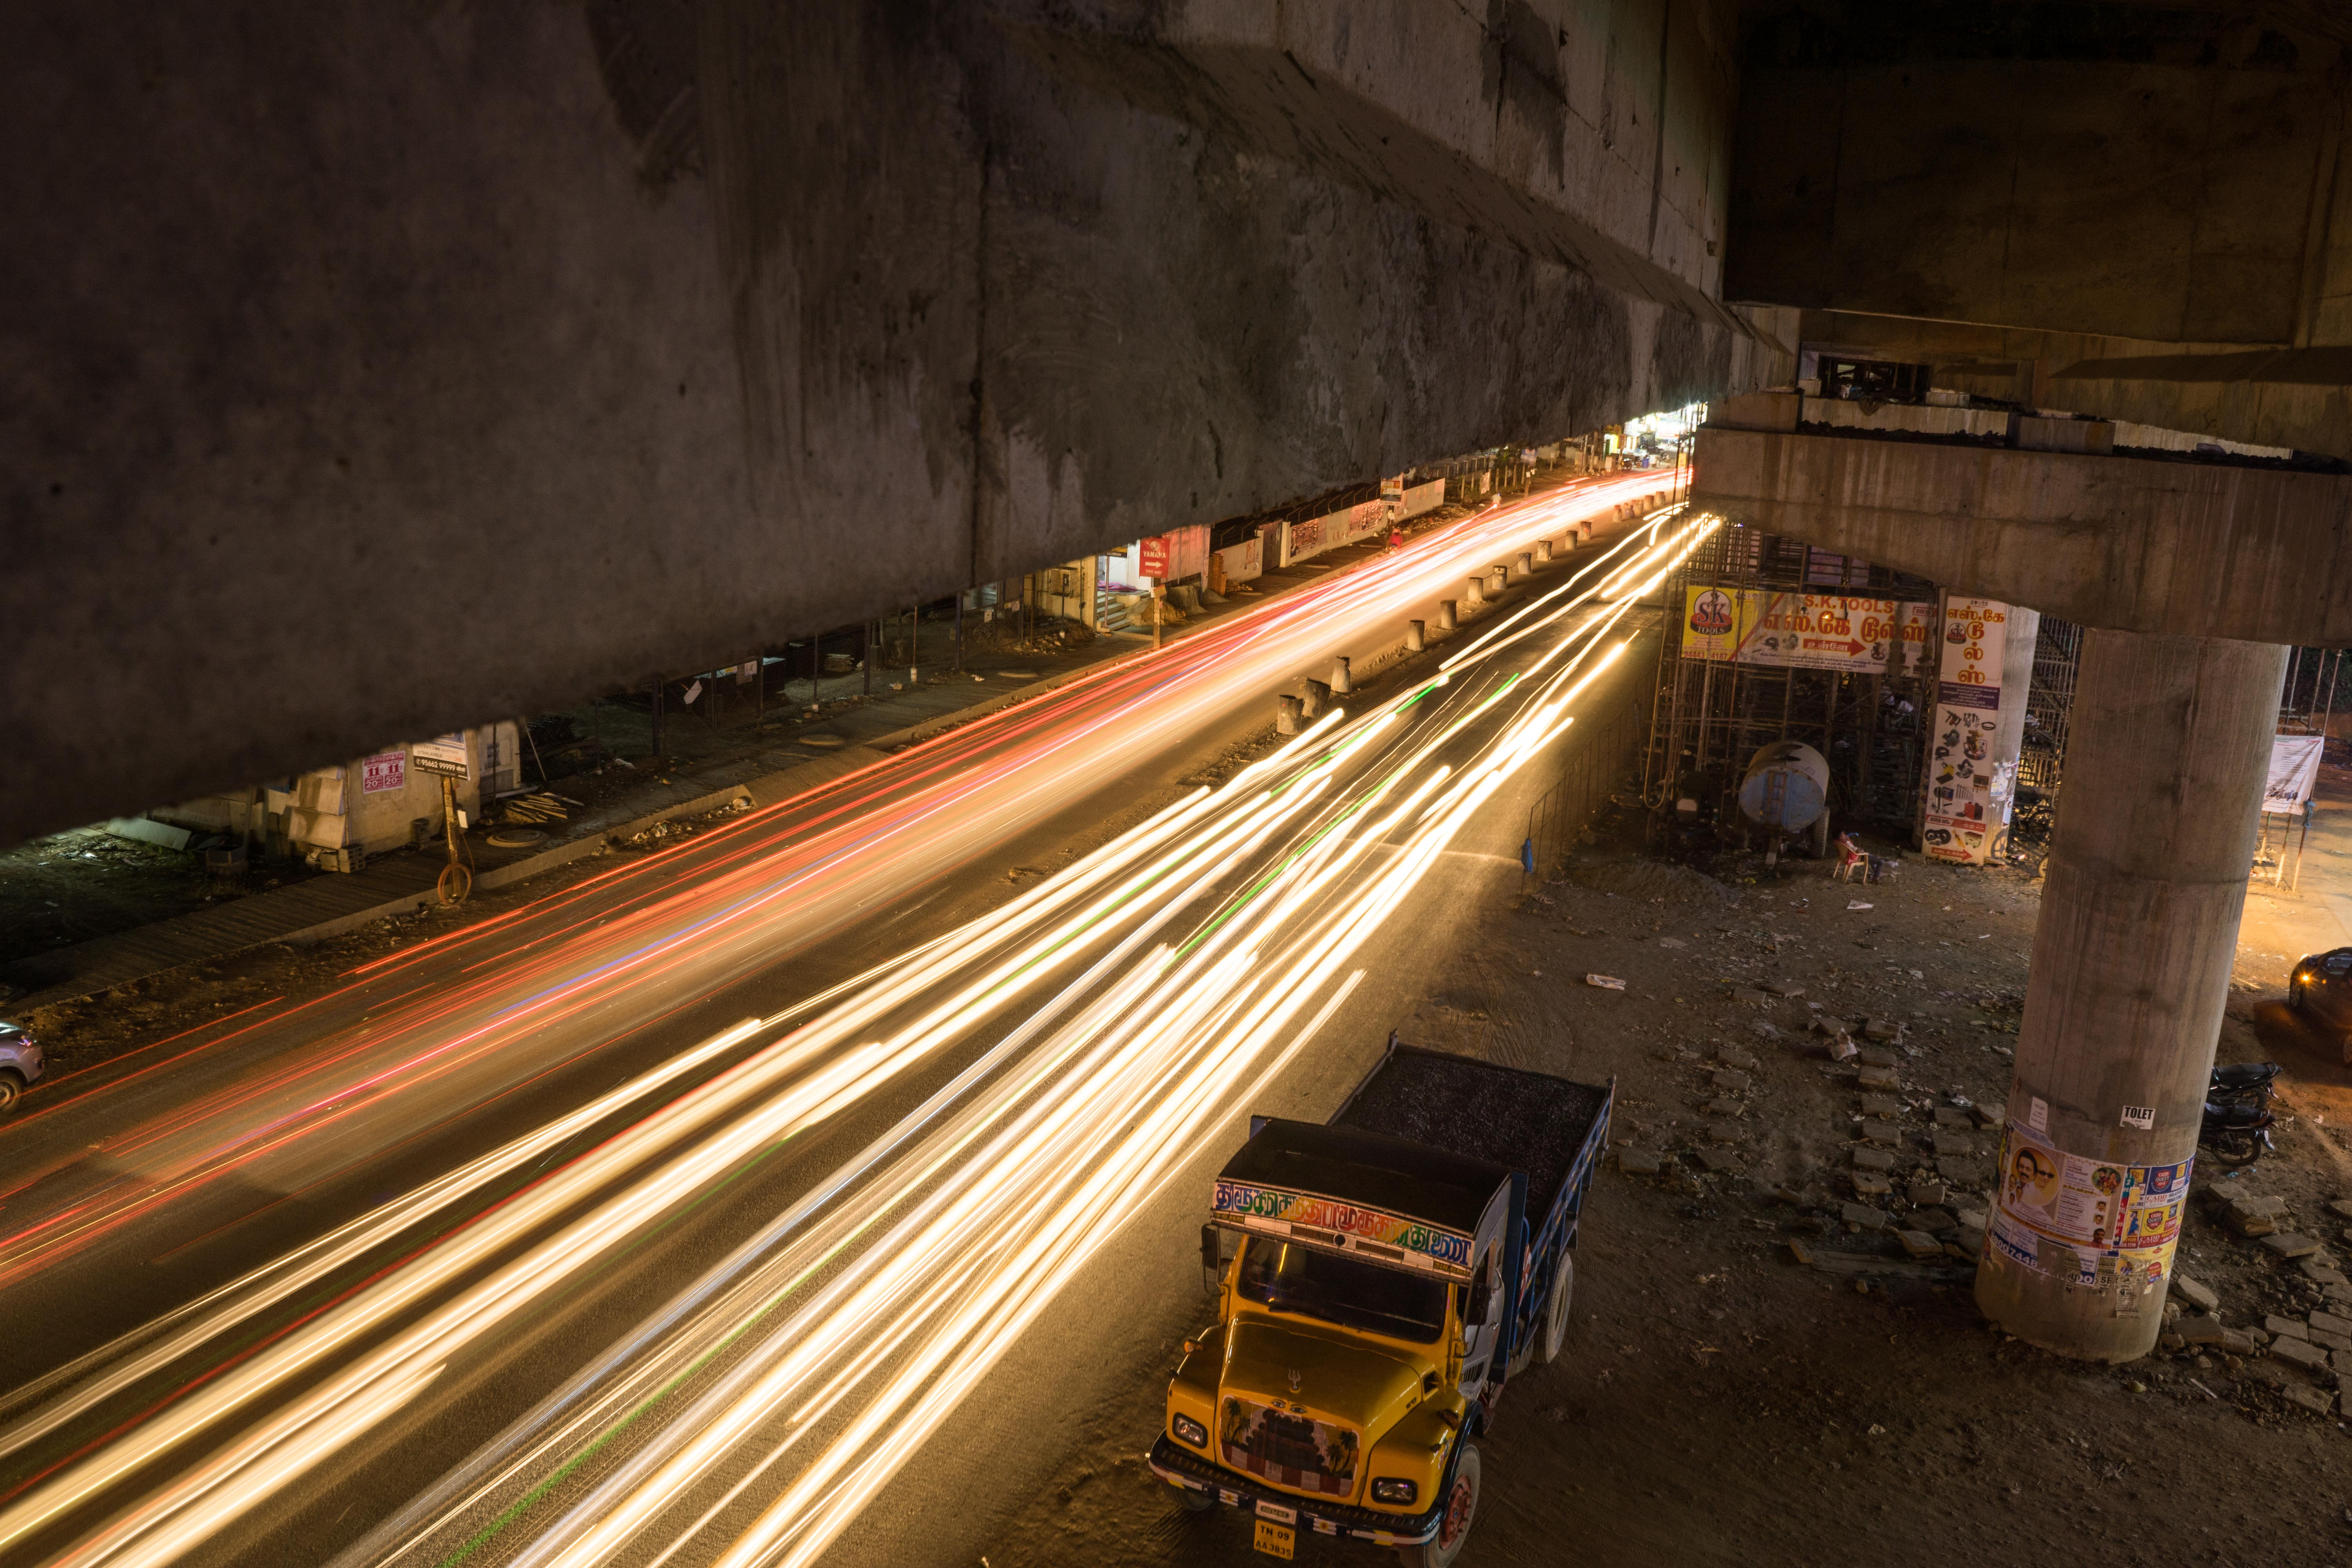 Long time exposure of Indian city traffic